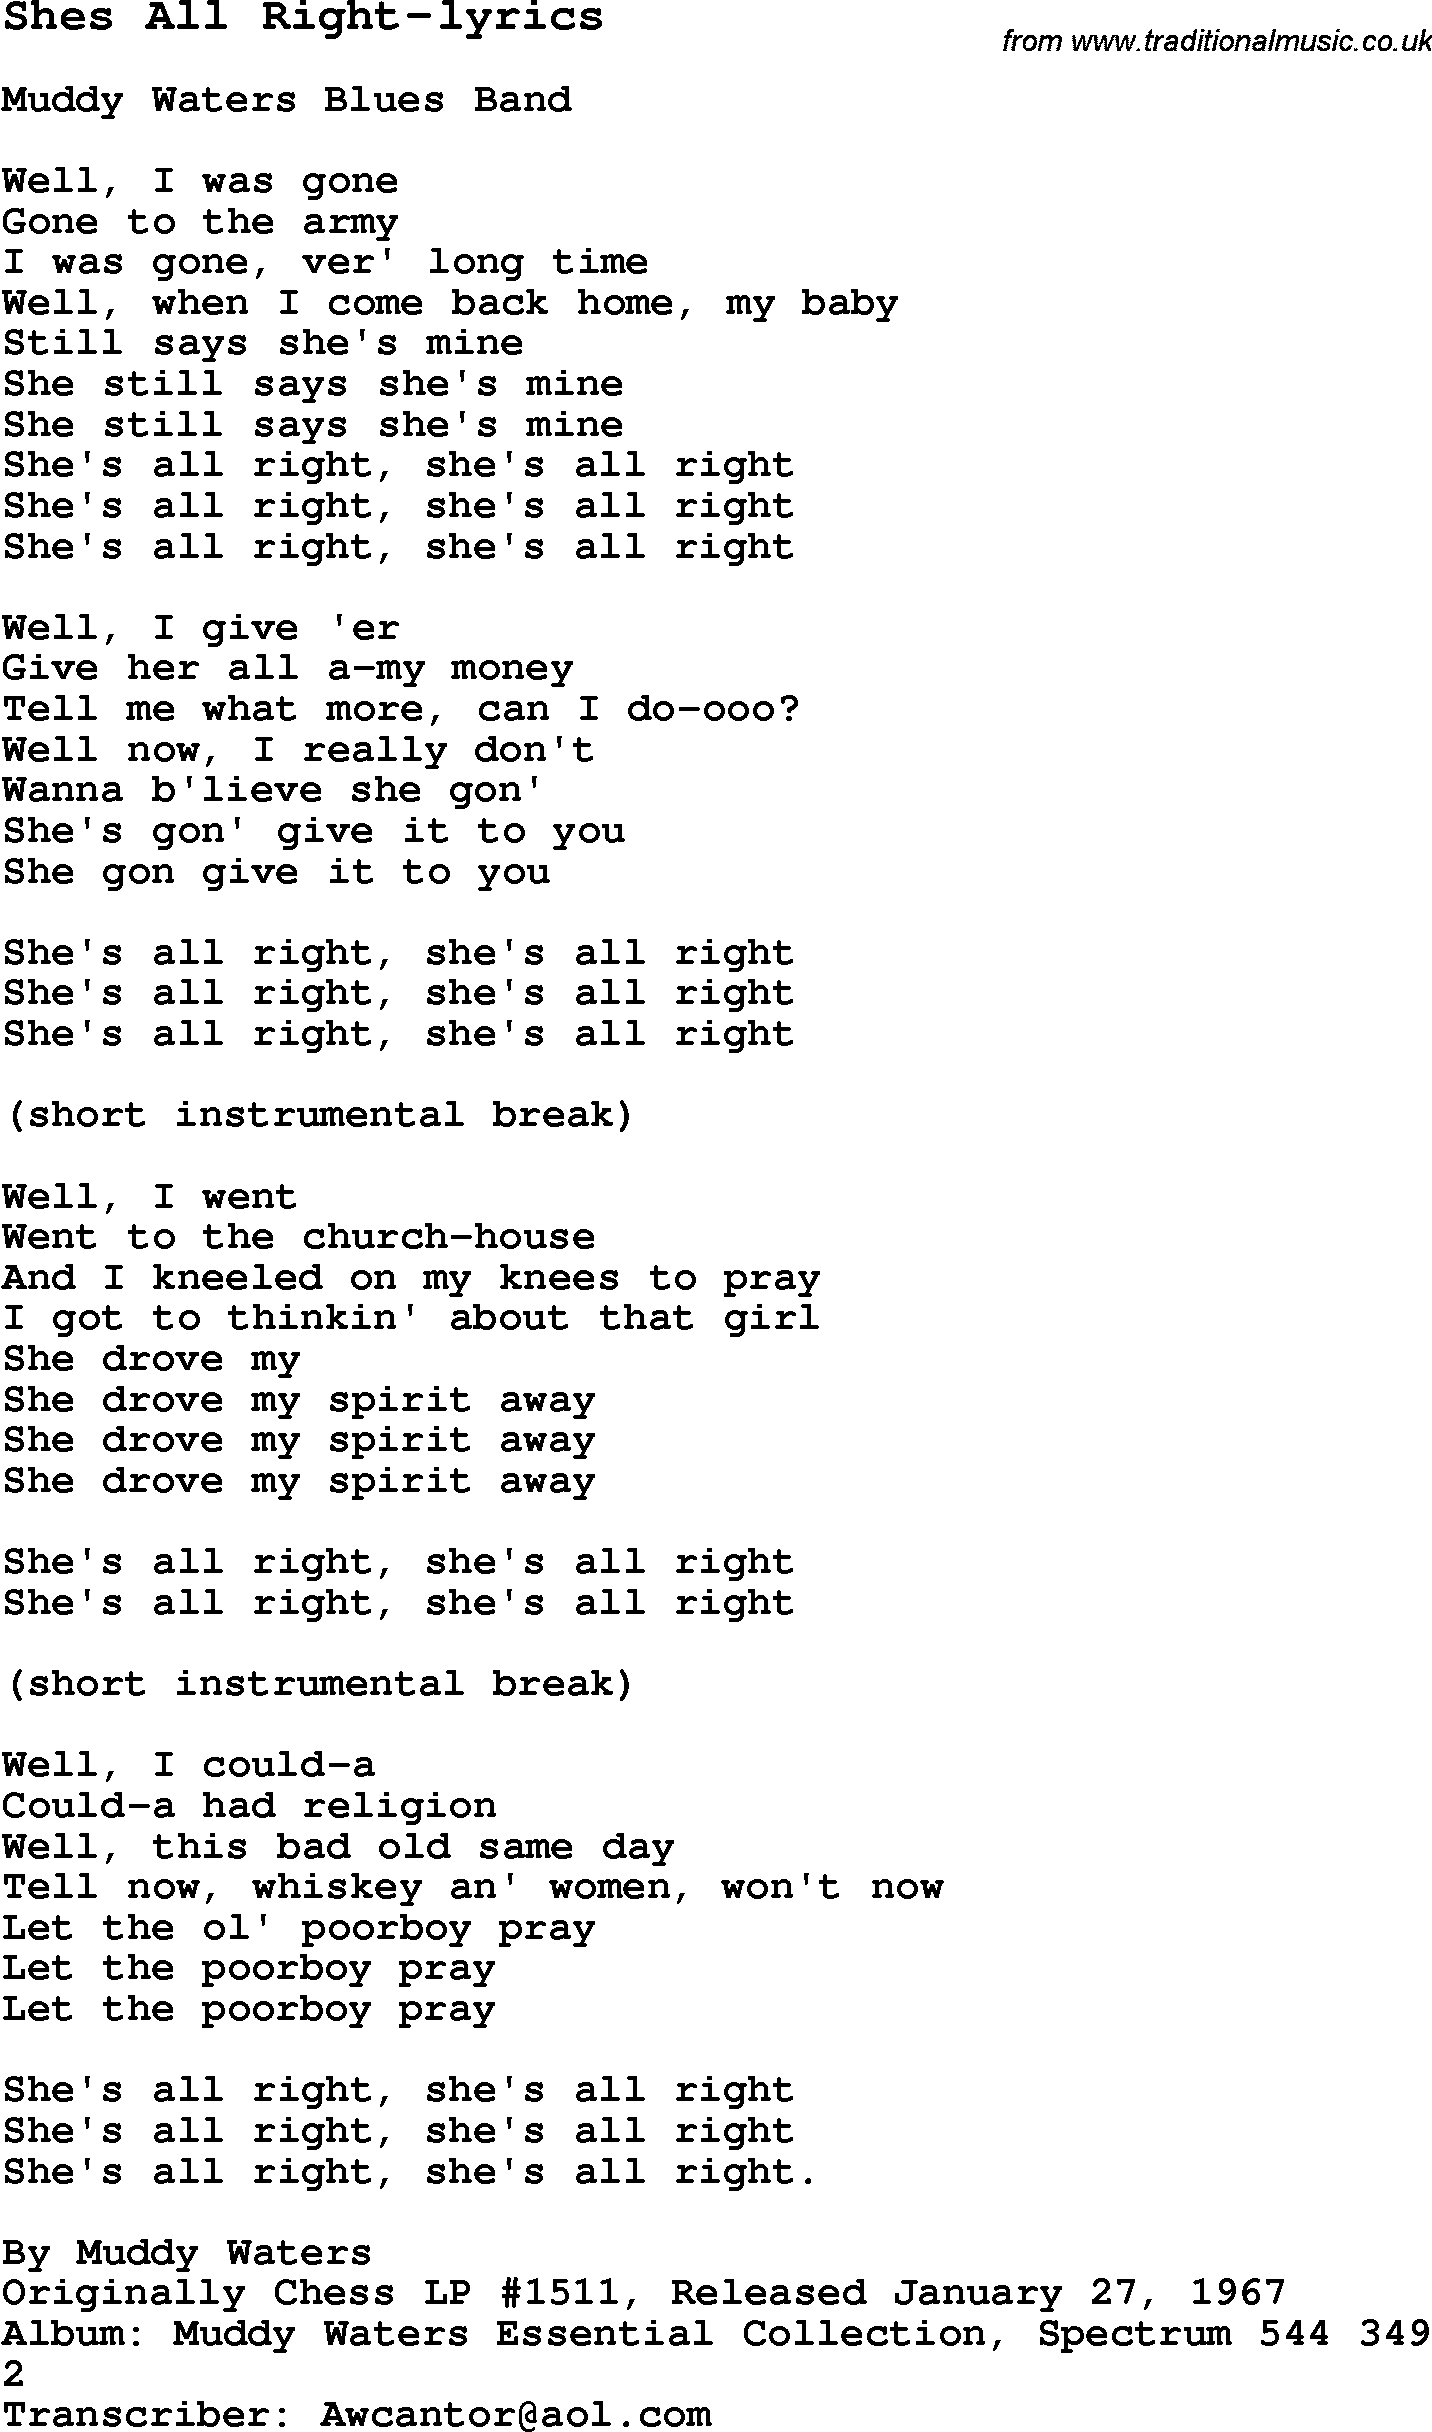 Blues Guitar lesson for Shes All Right-lyrics, with Chords, Tabs, and Lyrics